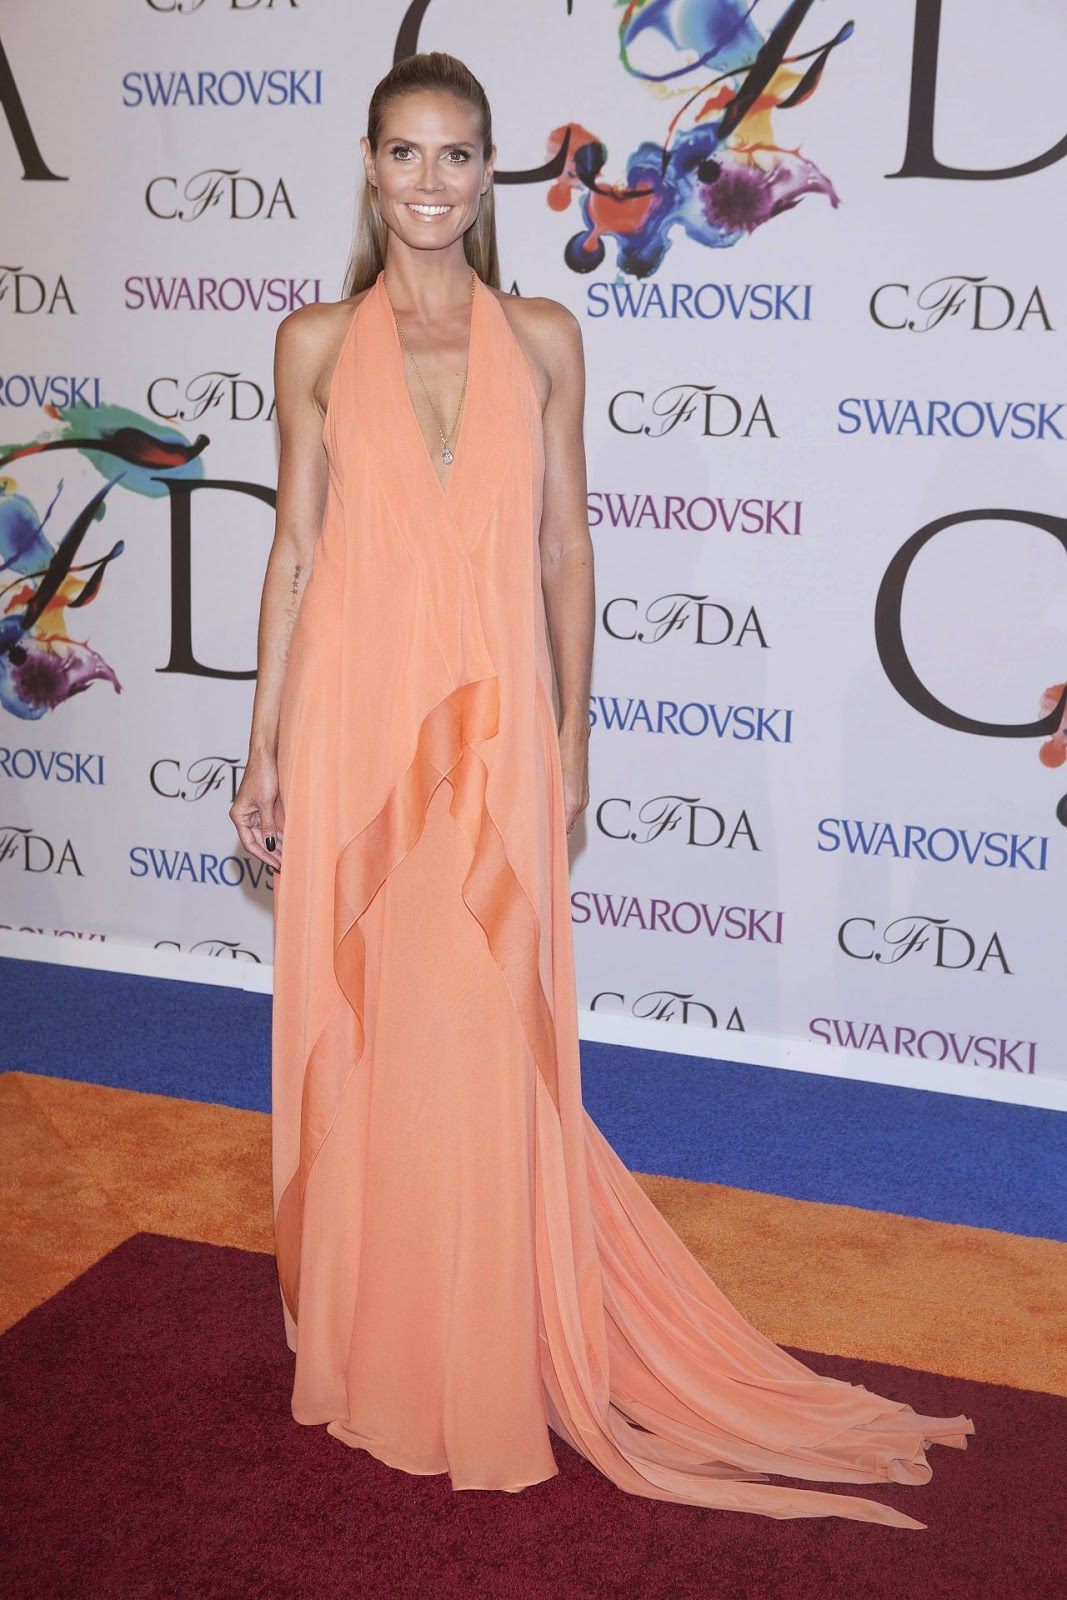 Heidi Klum wears Donna Karan to the 2014 CFDA Fashion Awards